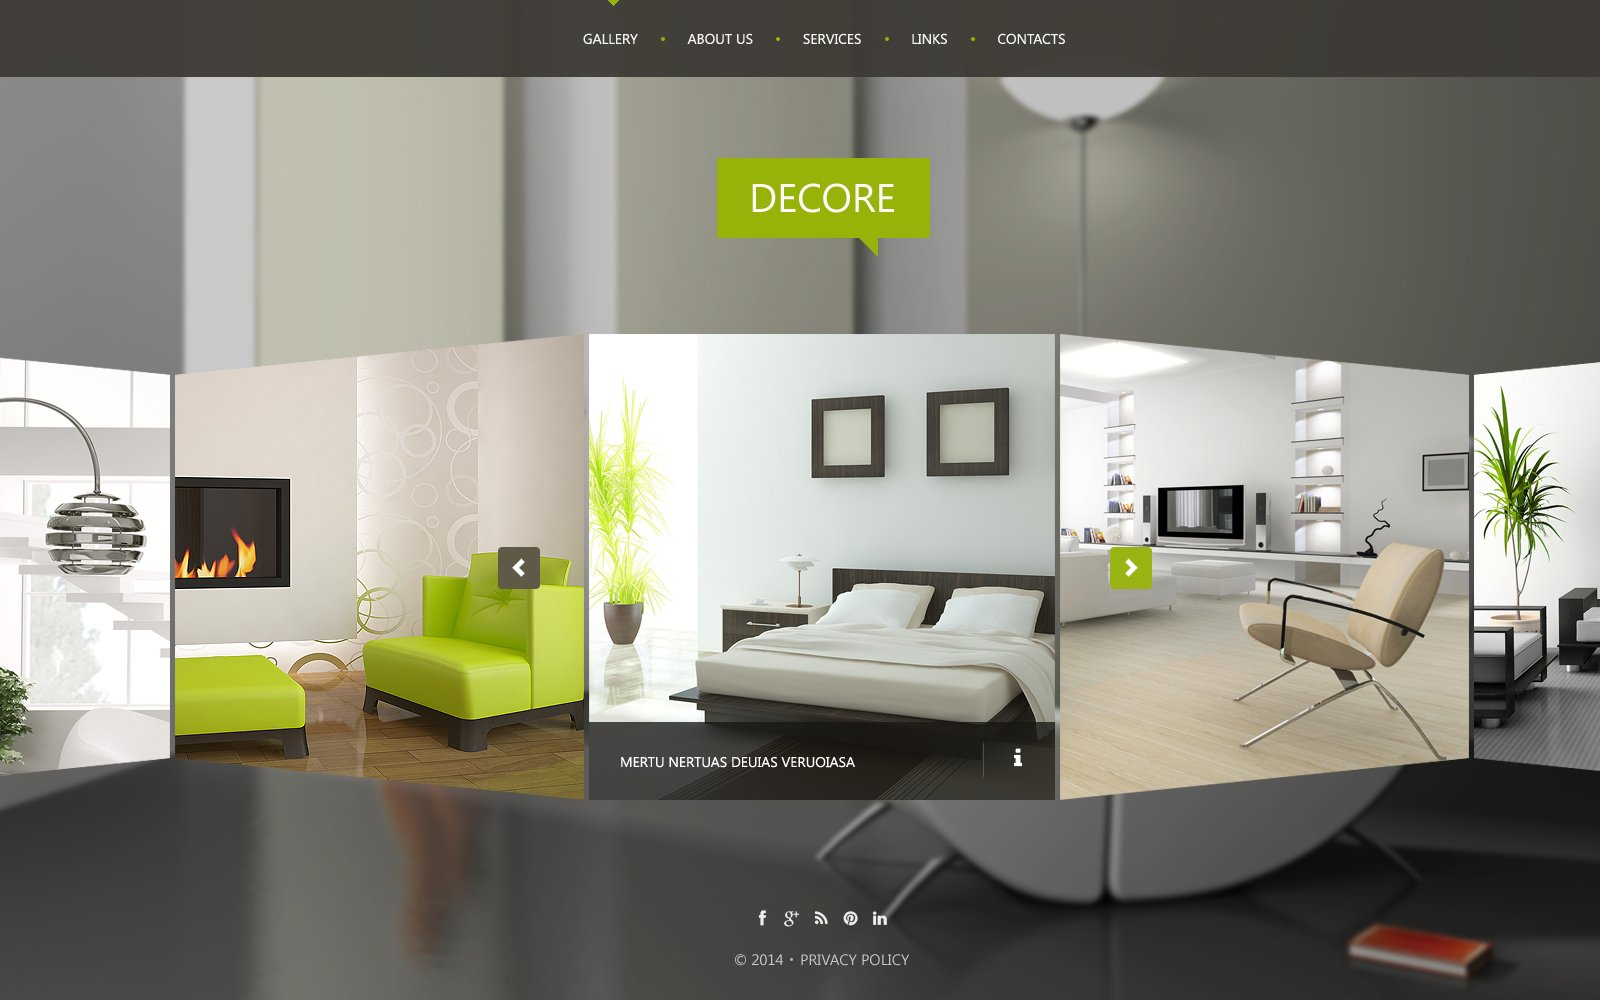 interior-design-website-template_51116-original.jpg